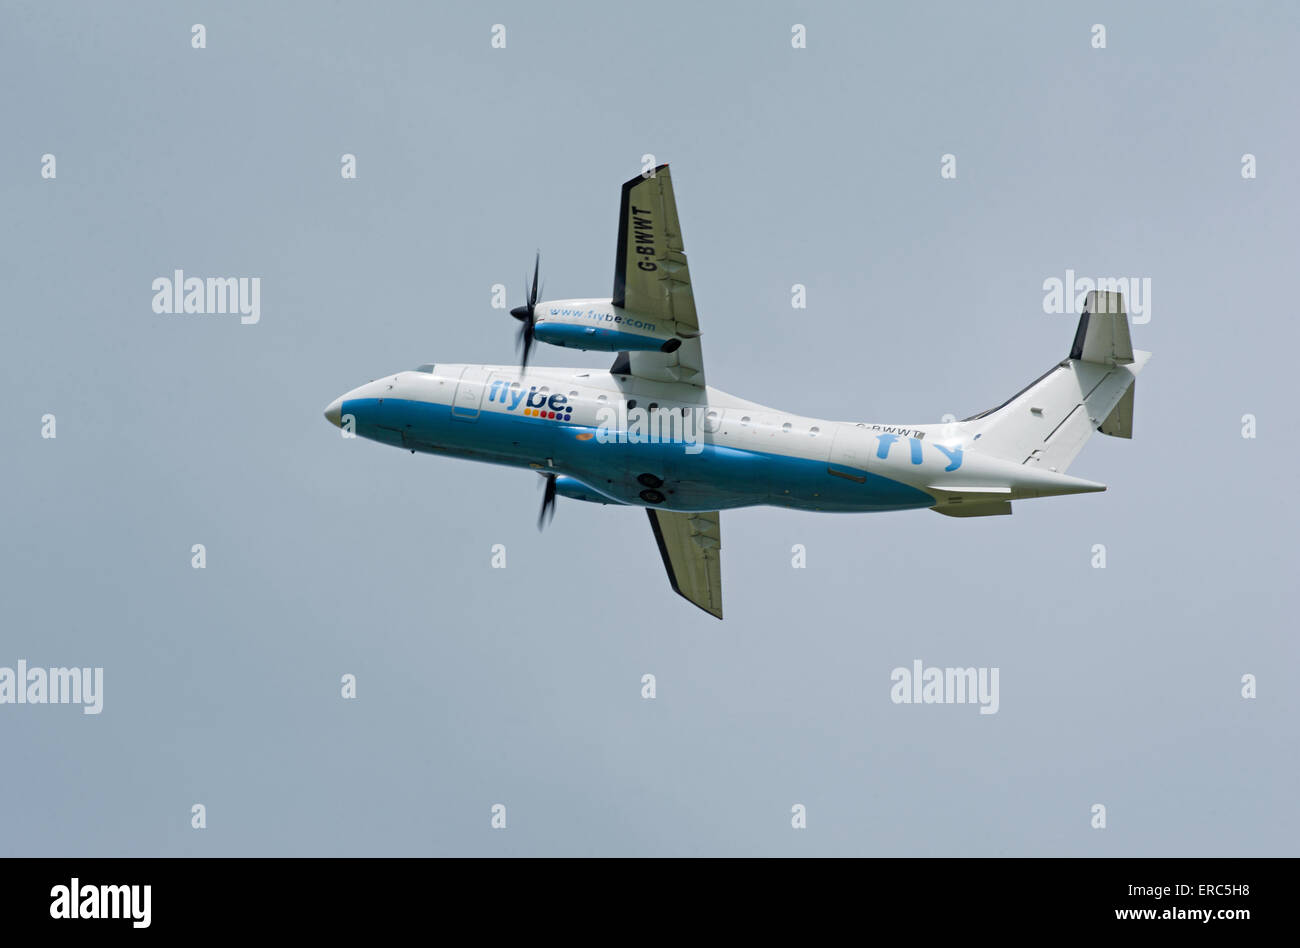 Dornier 328-100 34 seater short haul FlyBe airliner working from Inverness airport.  SCO 9821. - Stock Image